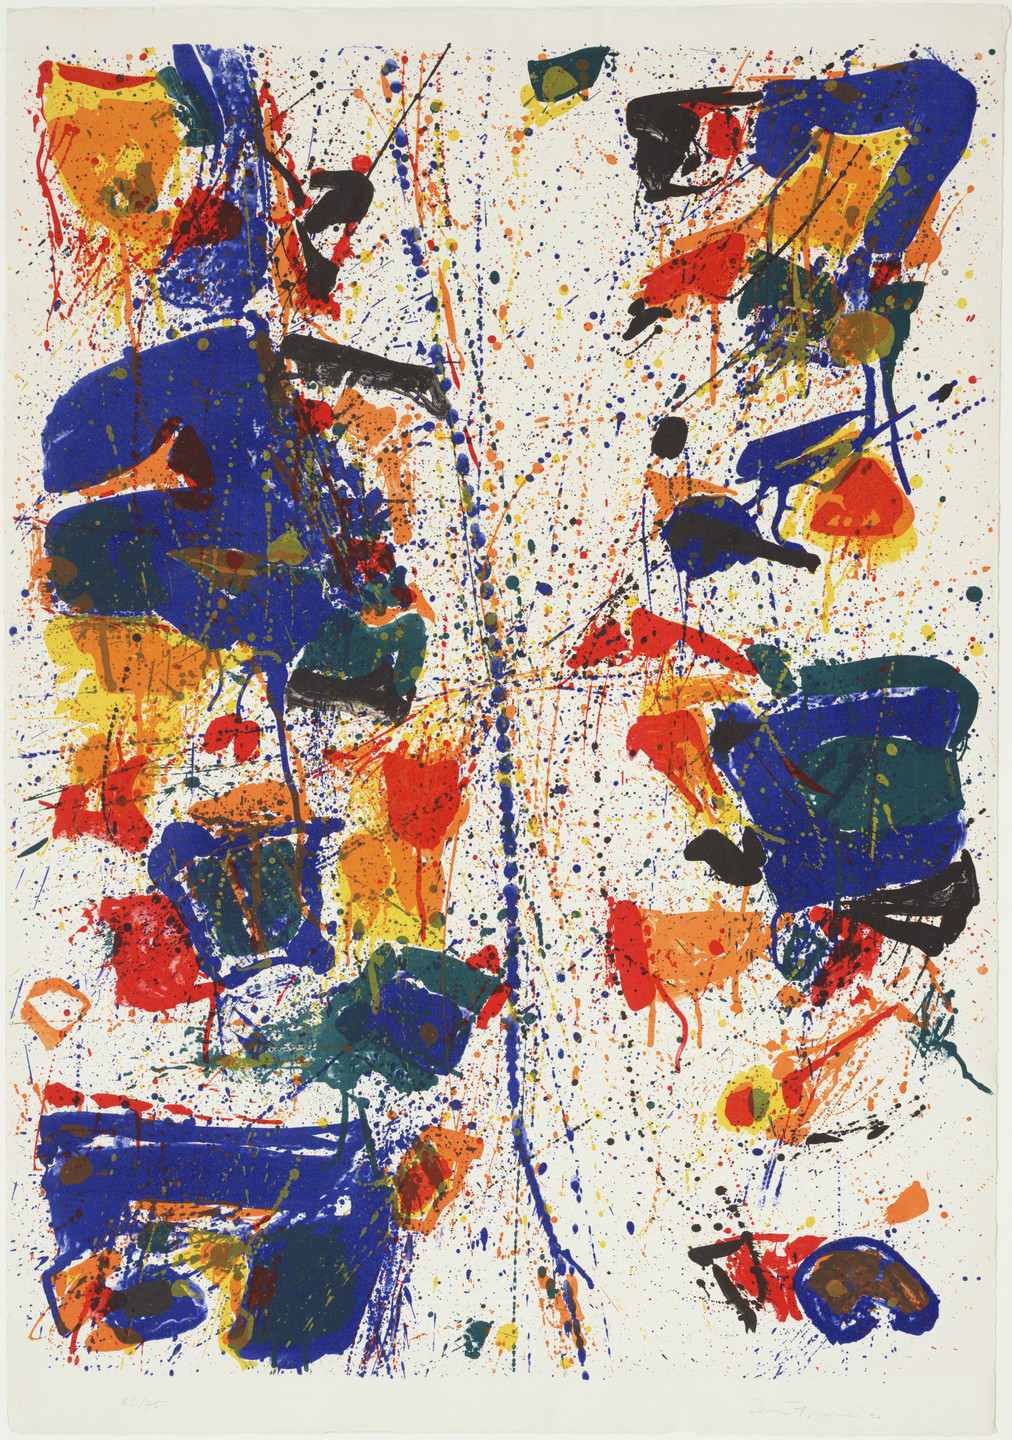 Sam Francis. The White Line. 1960